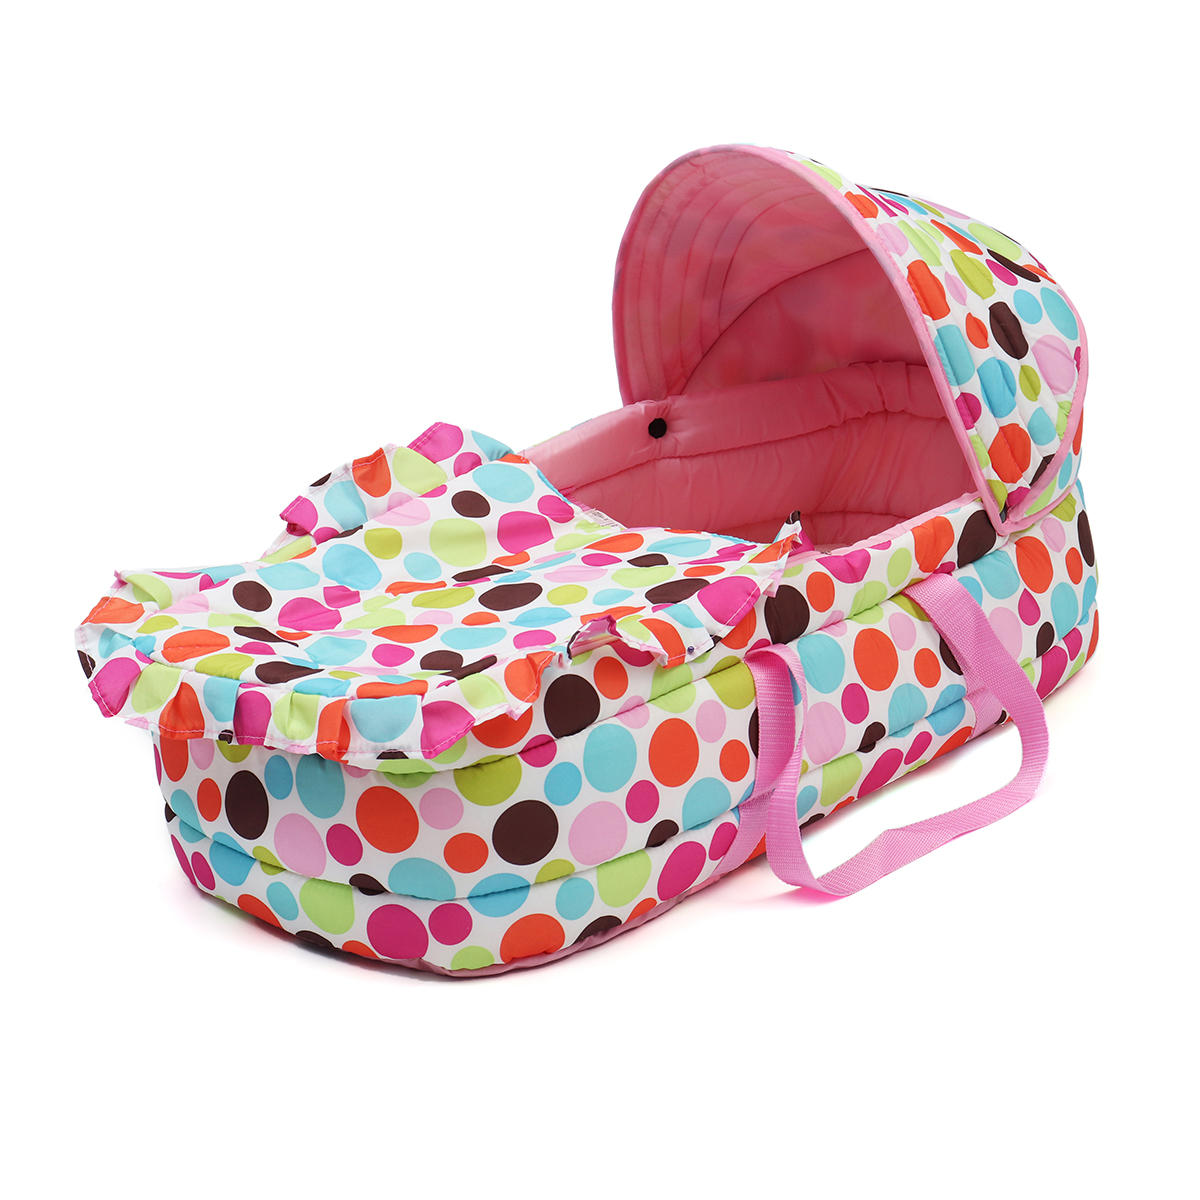 Portable Newborn Baby Infant Moses Basket Bed Baby Cradle Bassinet Travel Comfortable - 4